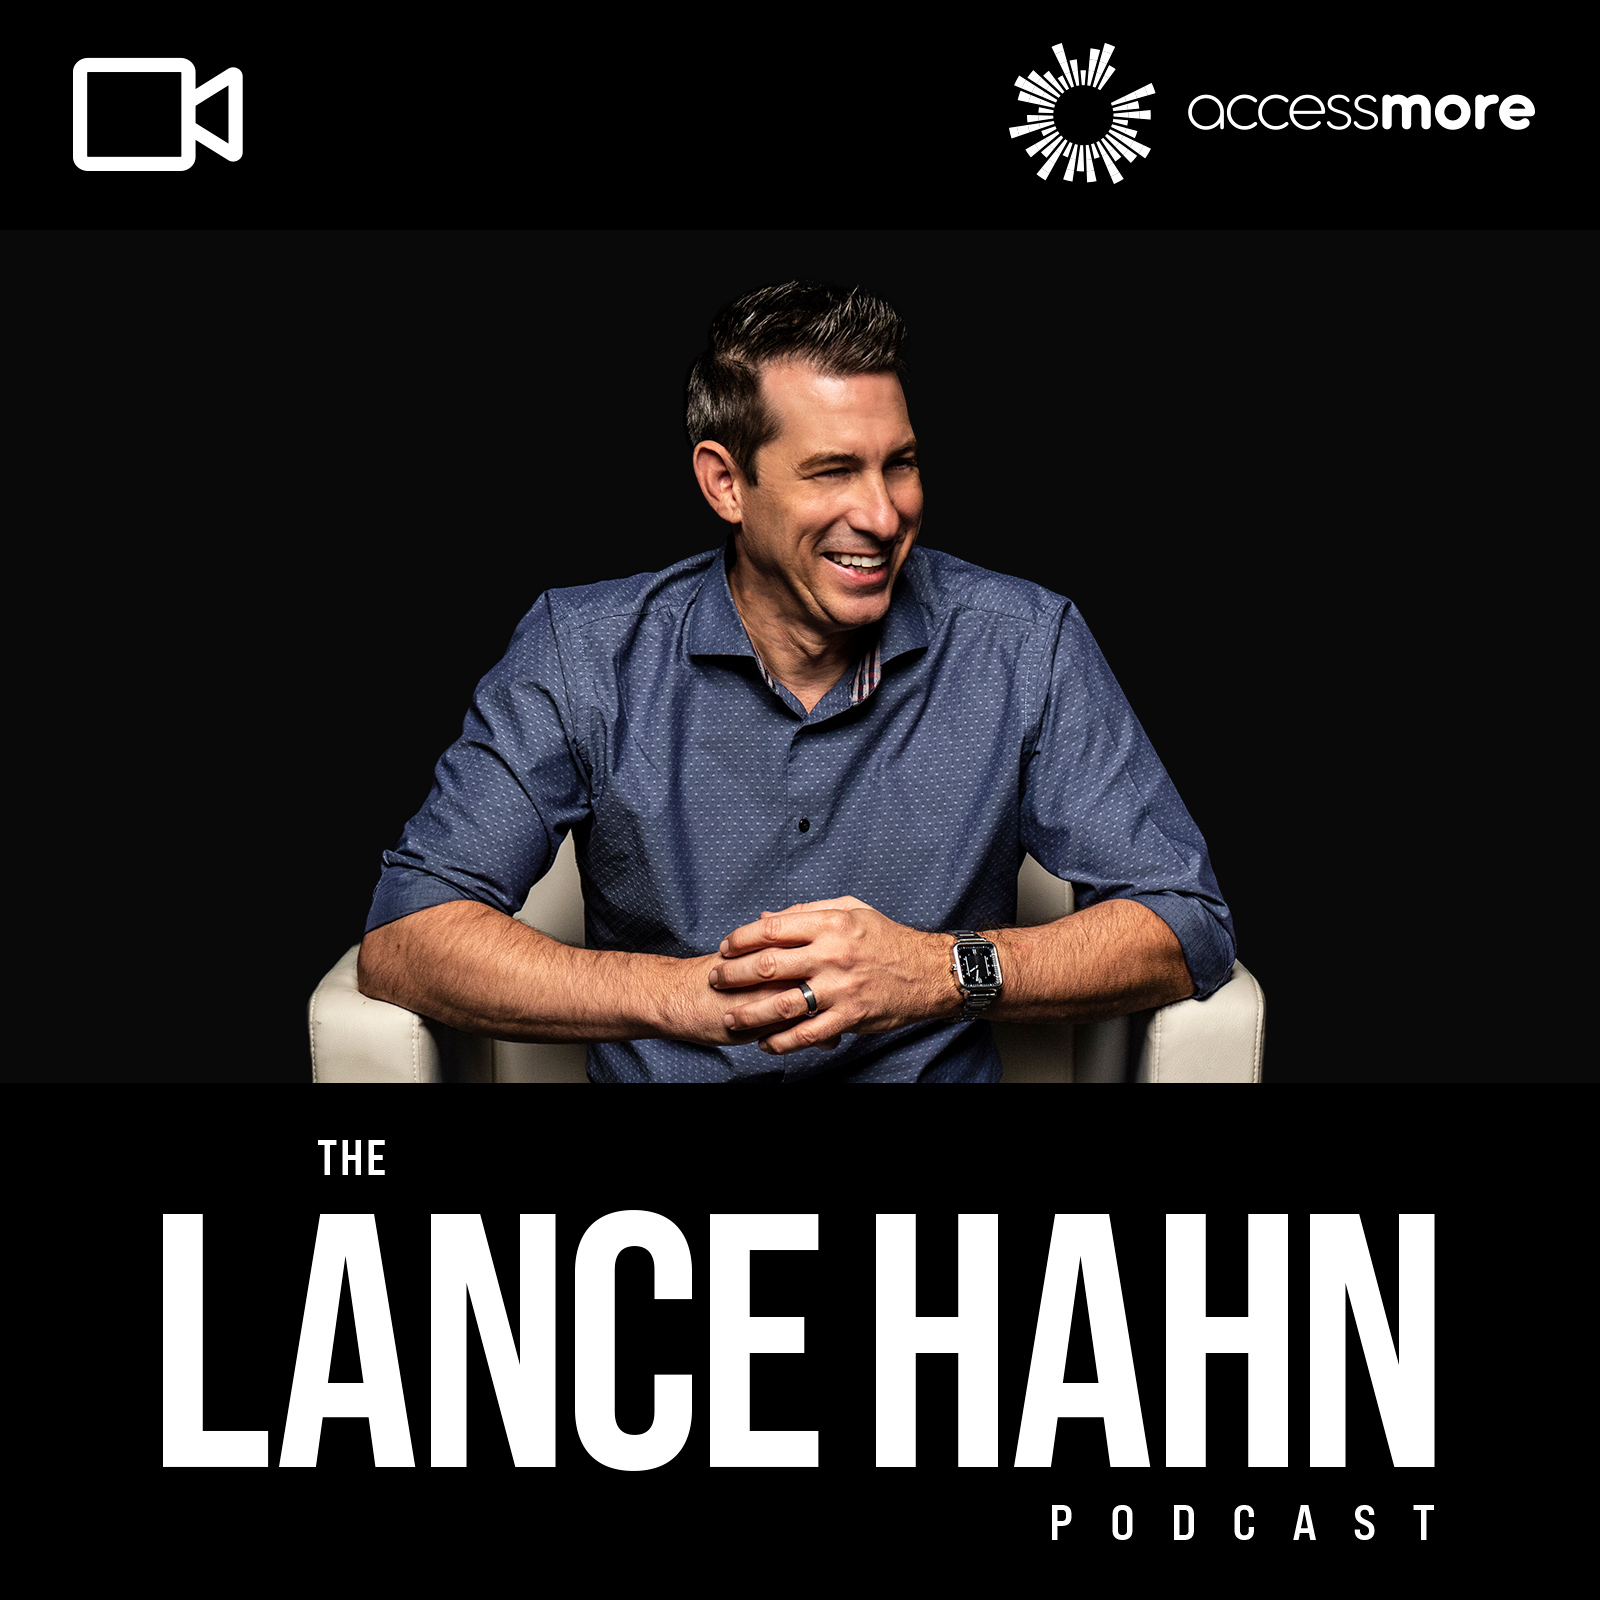 The Lance Hahn VIDEO Podcast